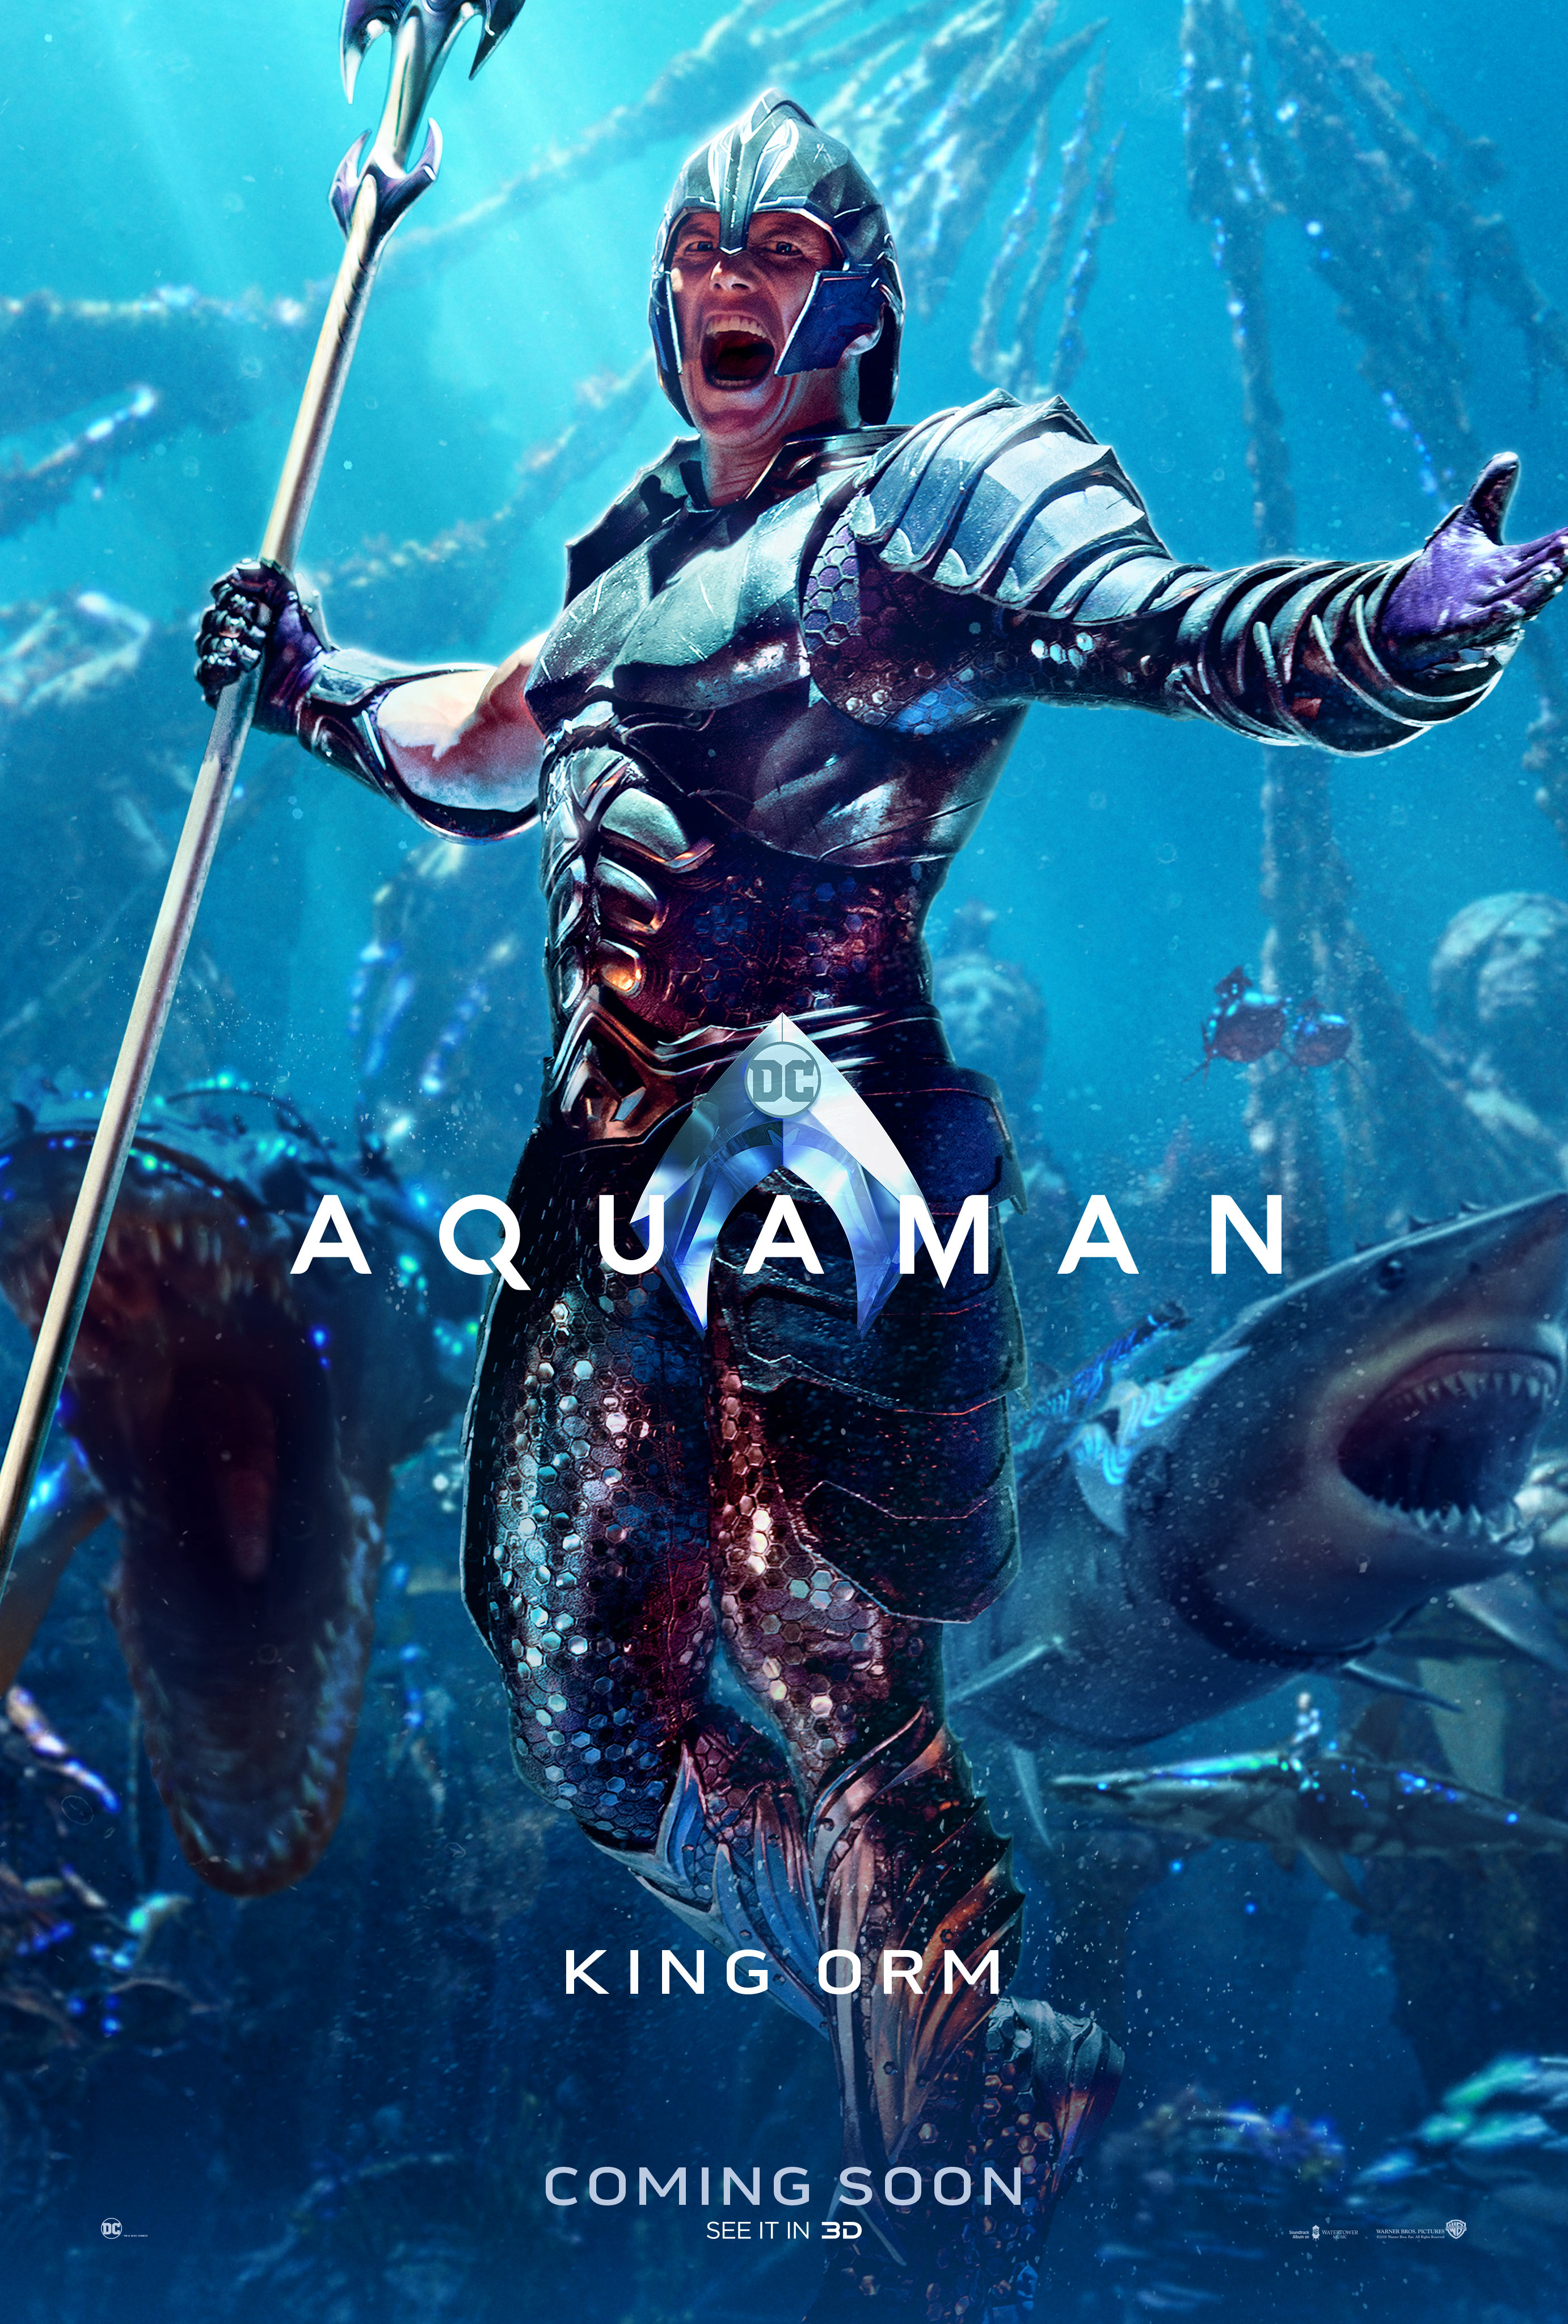 KING ORM.